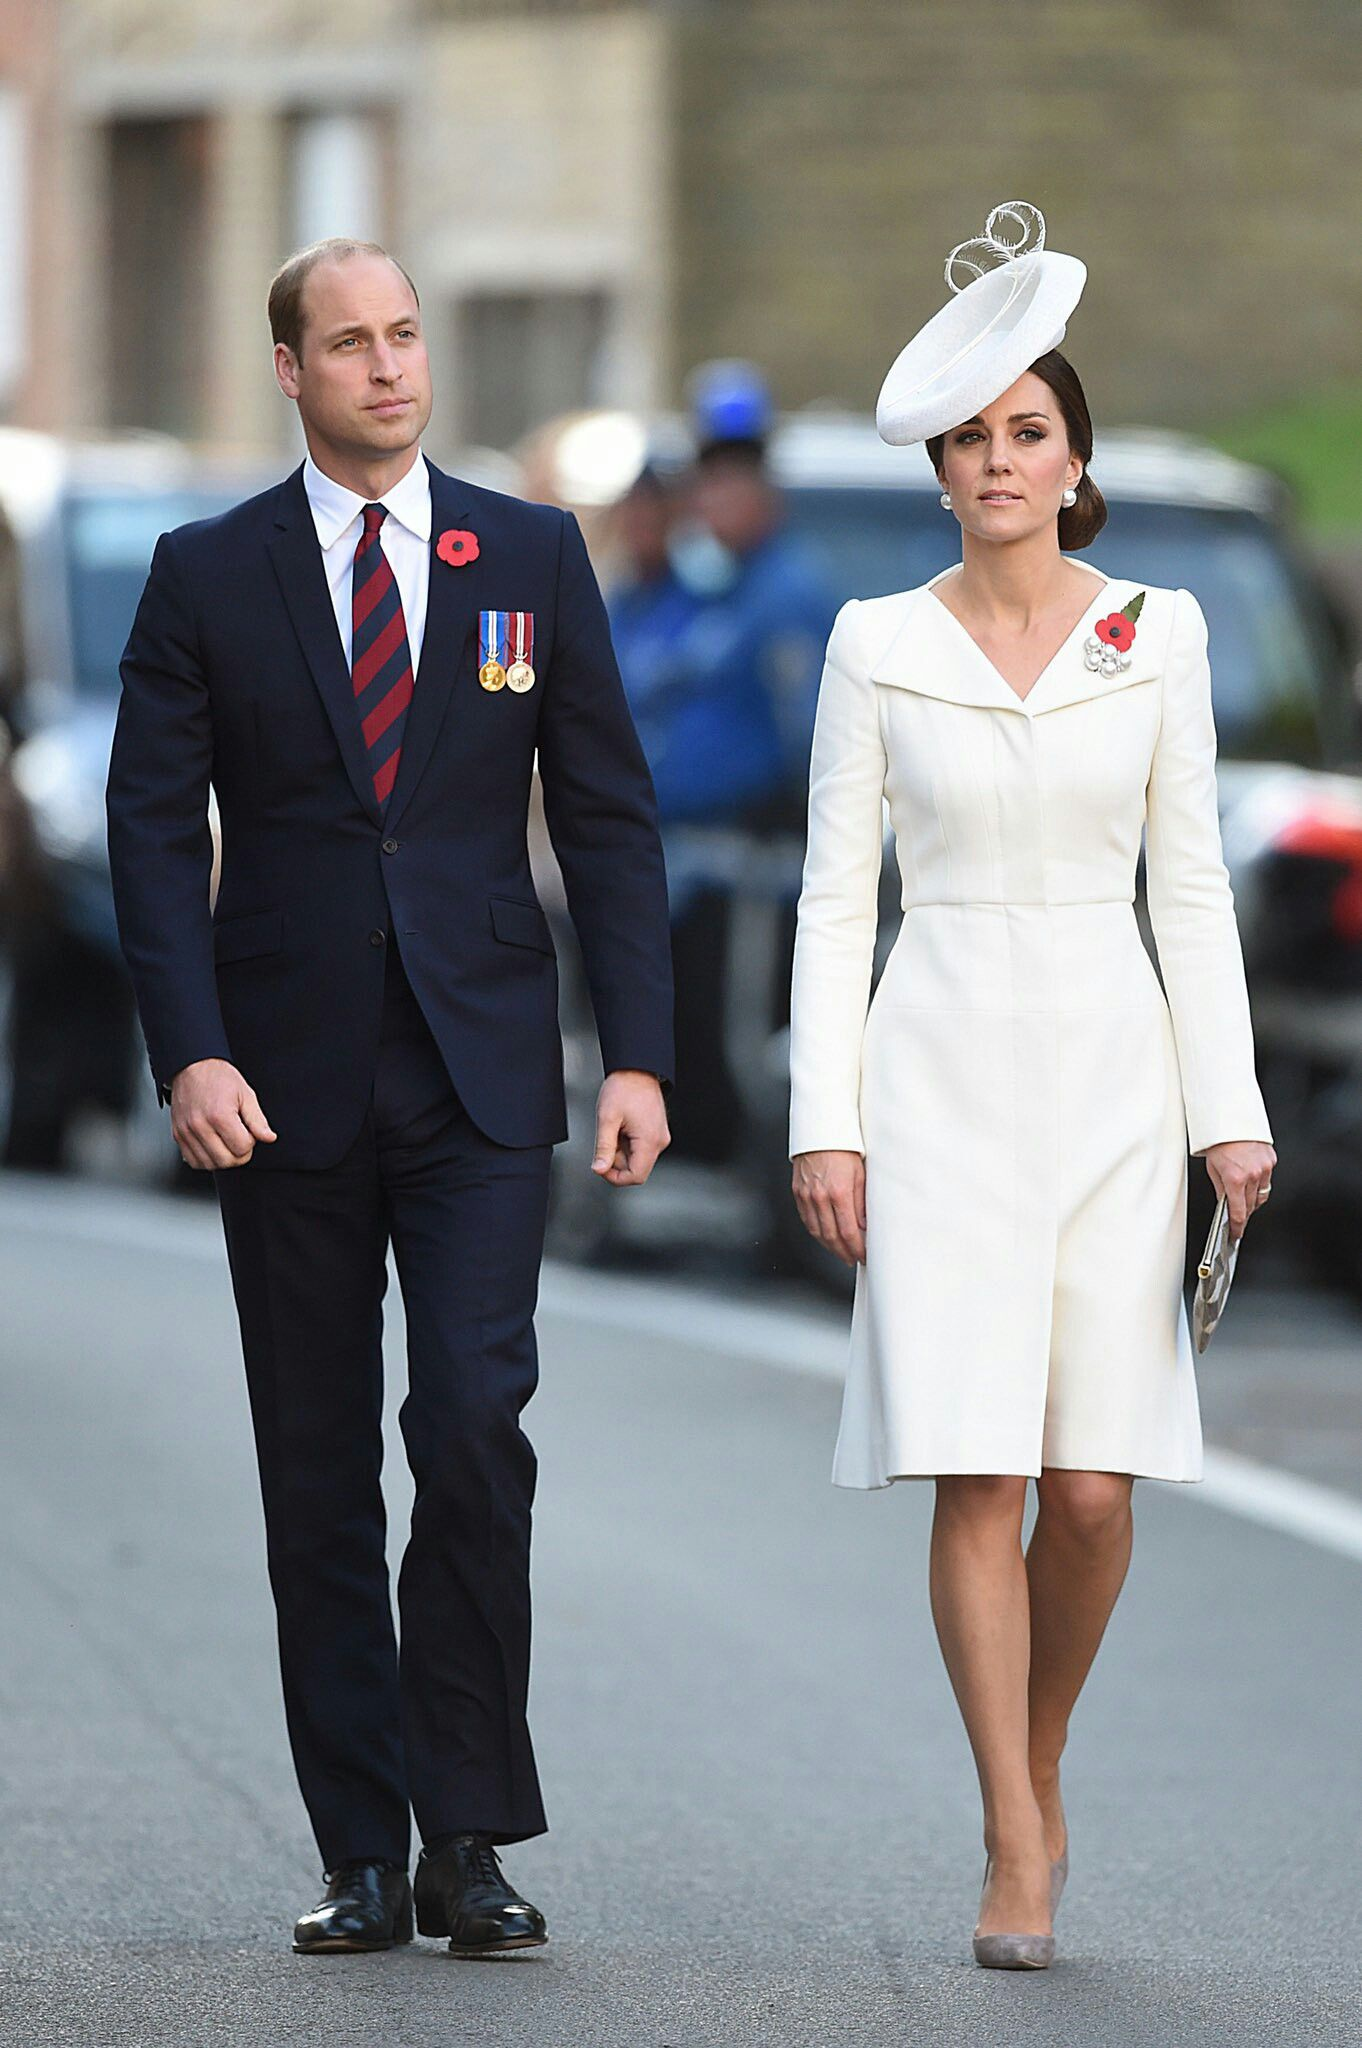 Everything British: Kate Middleton and the Re-Birth of the